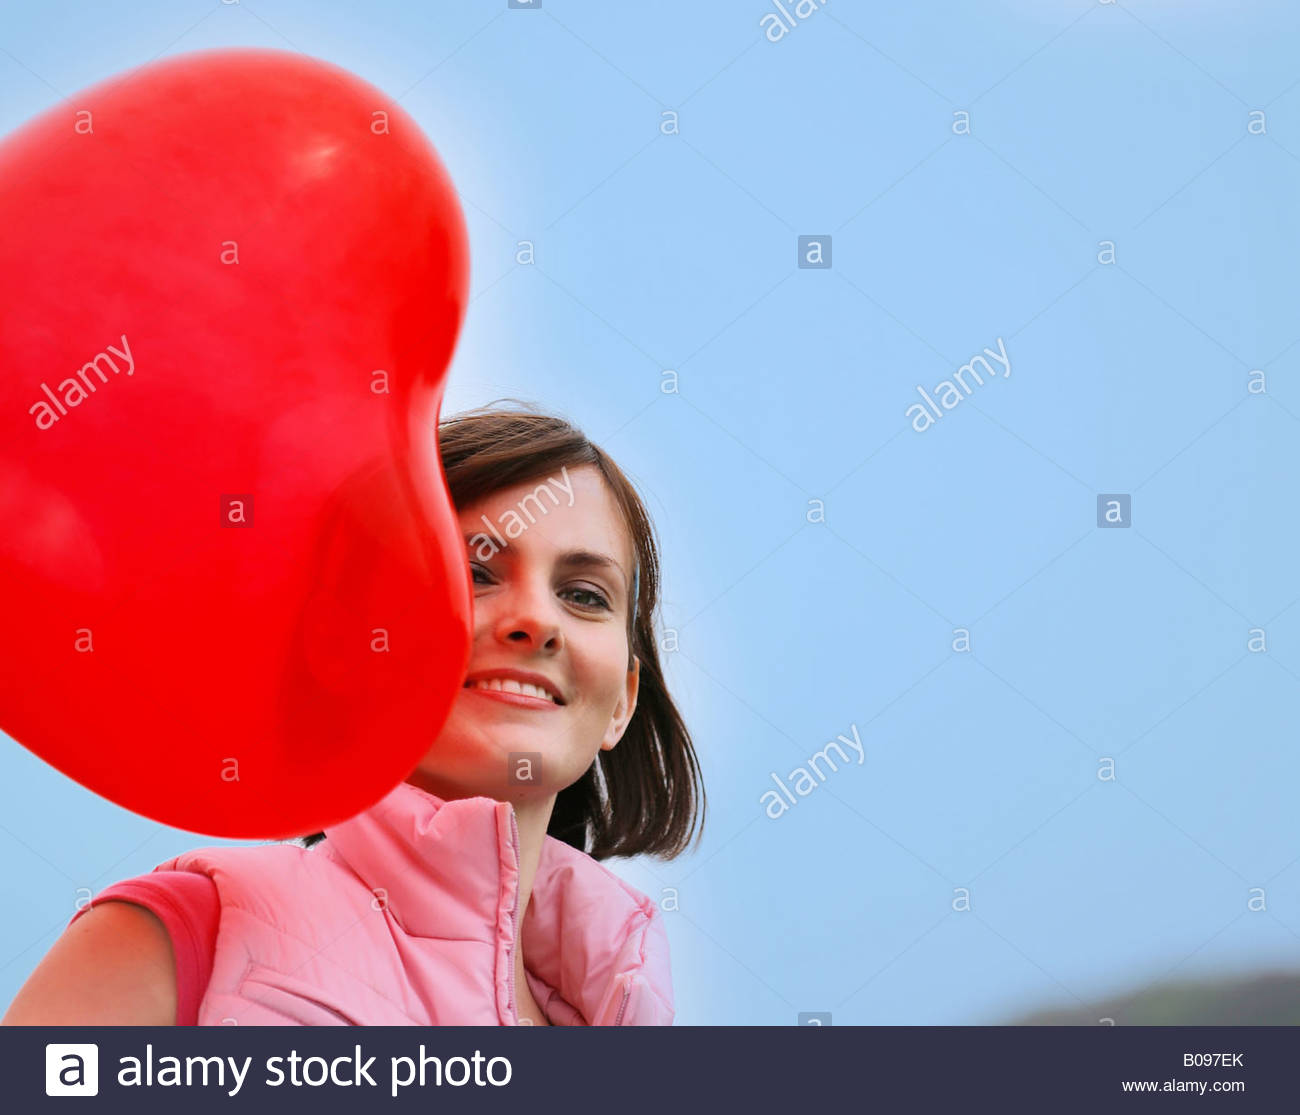 woman with red heart-shaped balloon - Stock Image